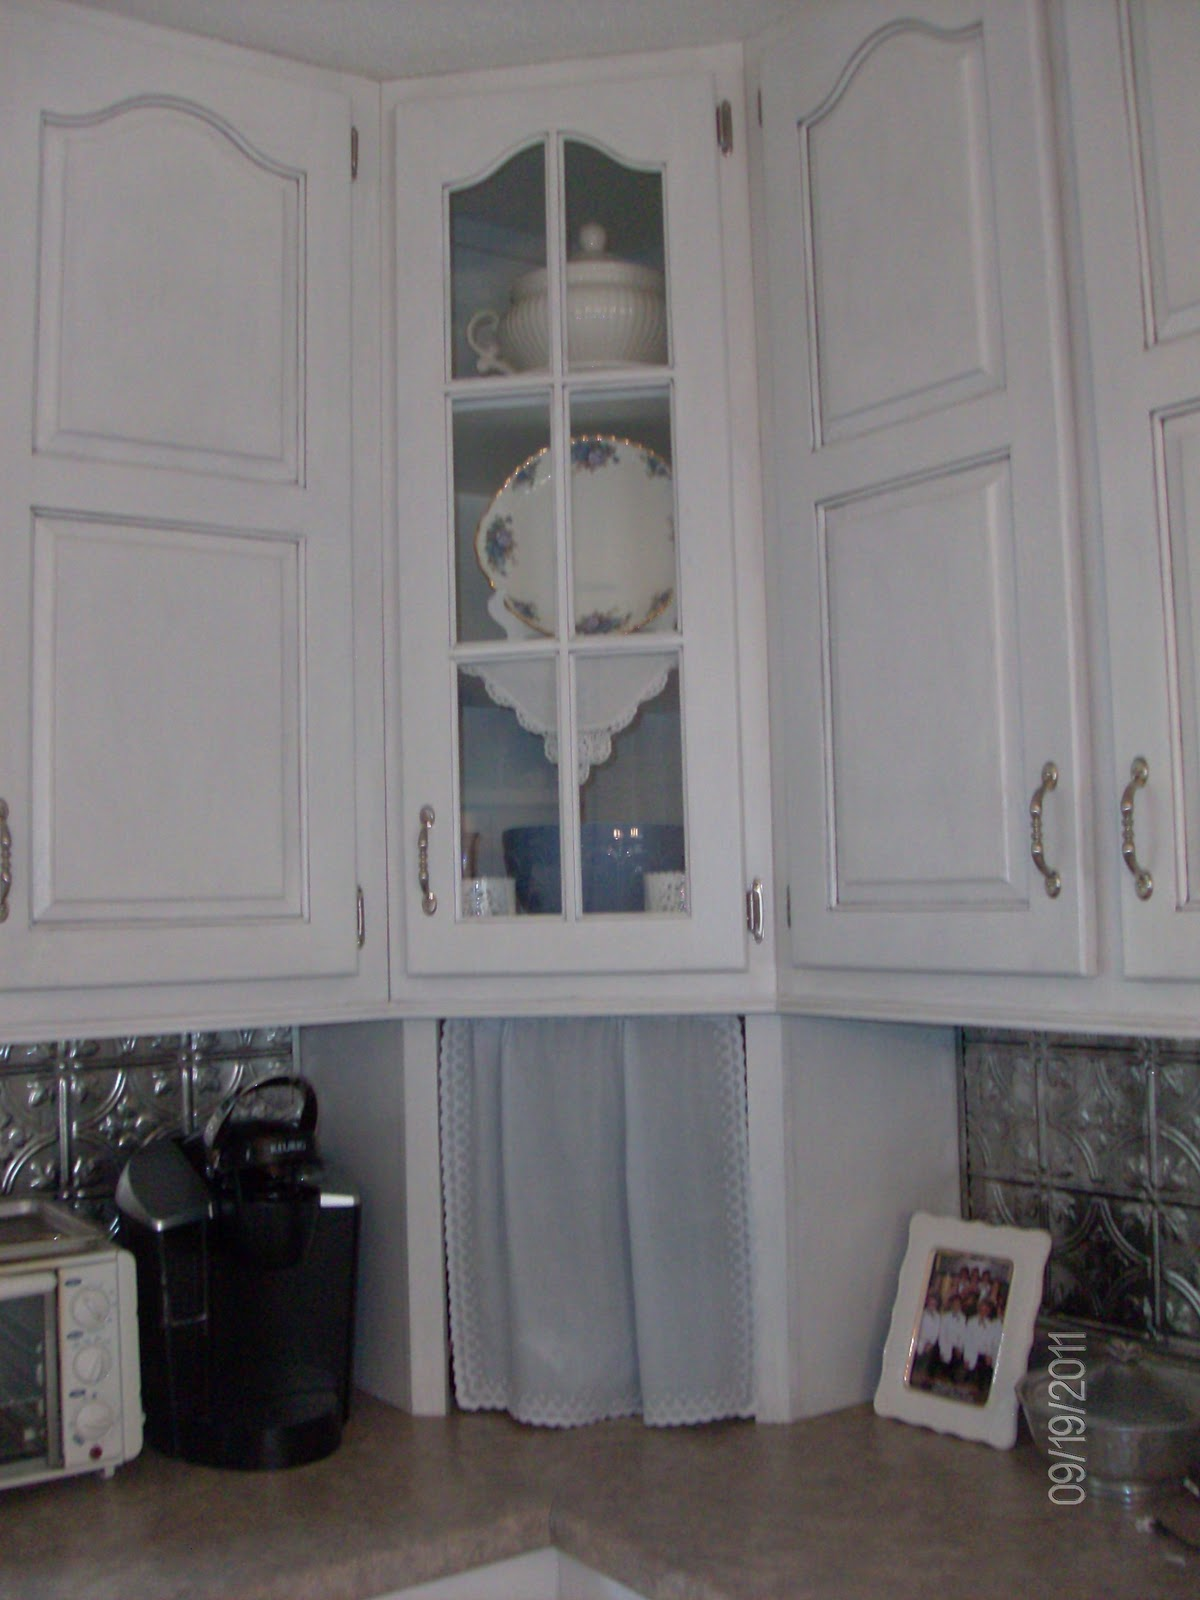 Adkisson's Cabinets